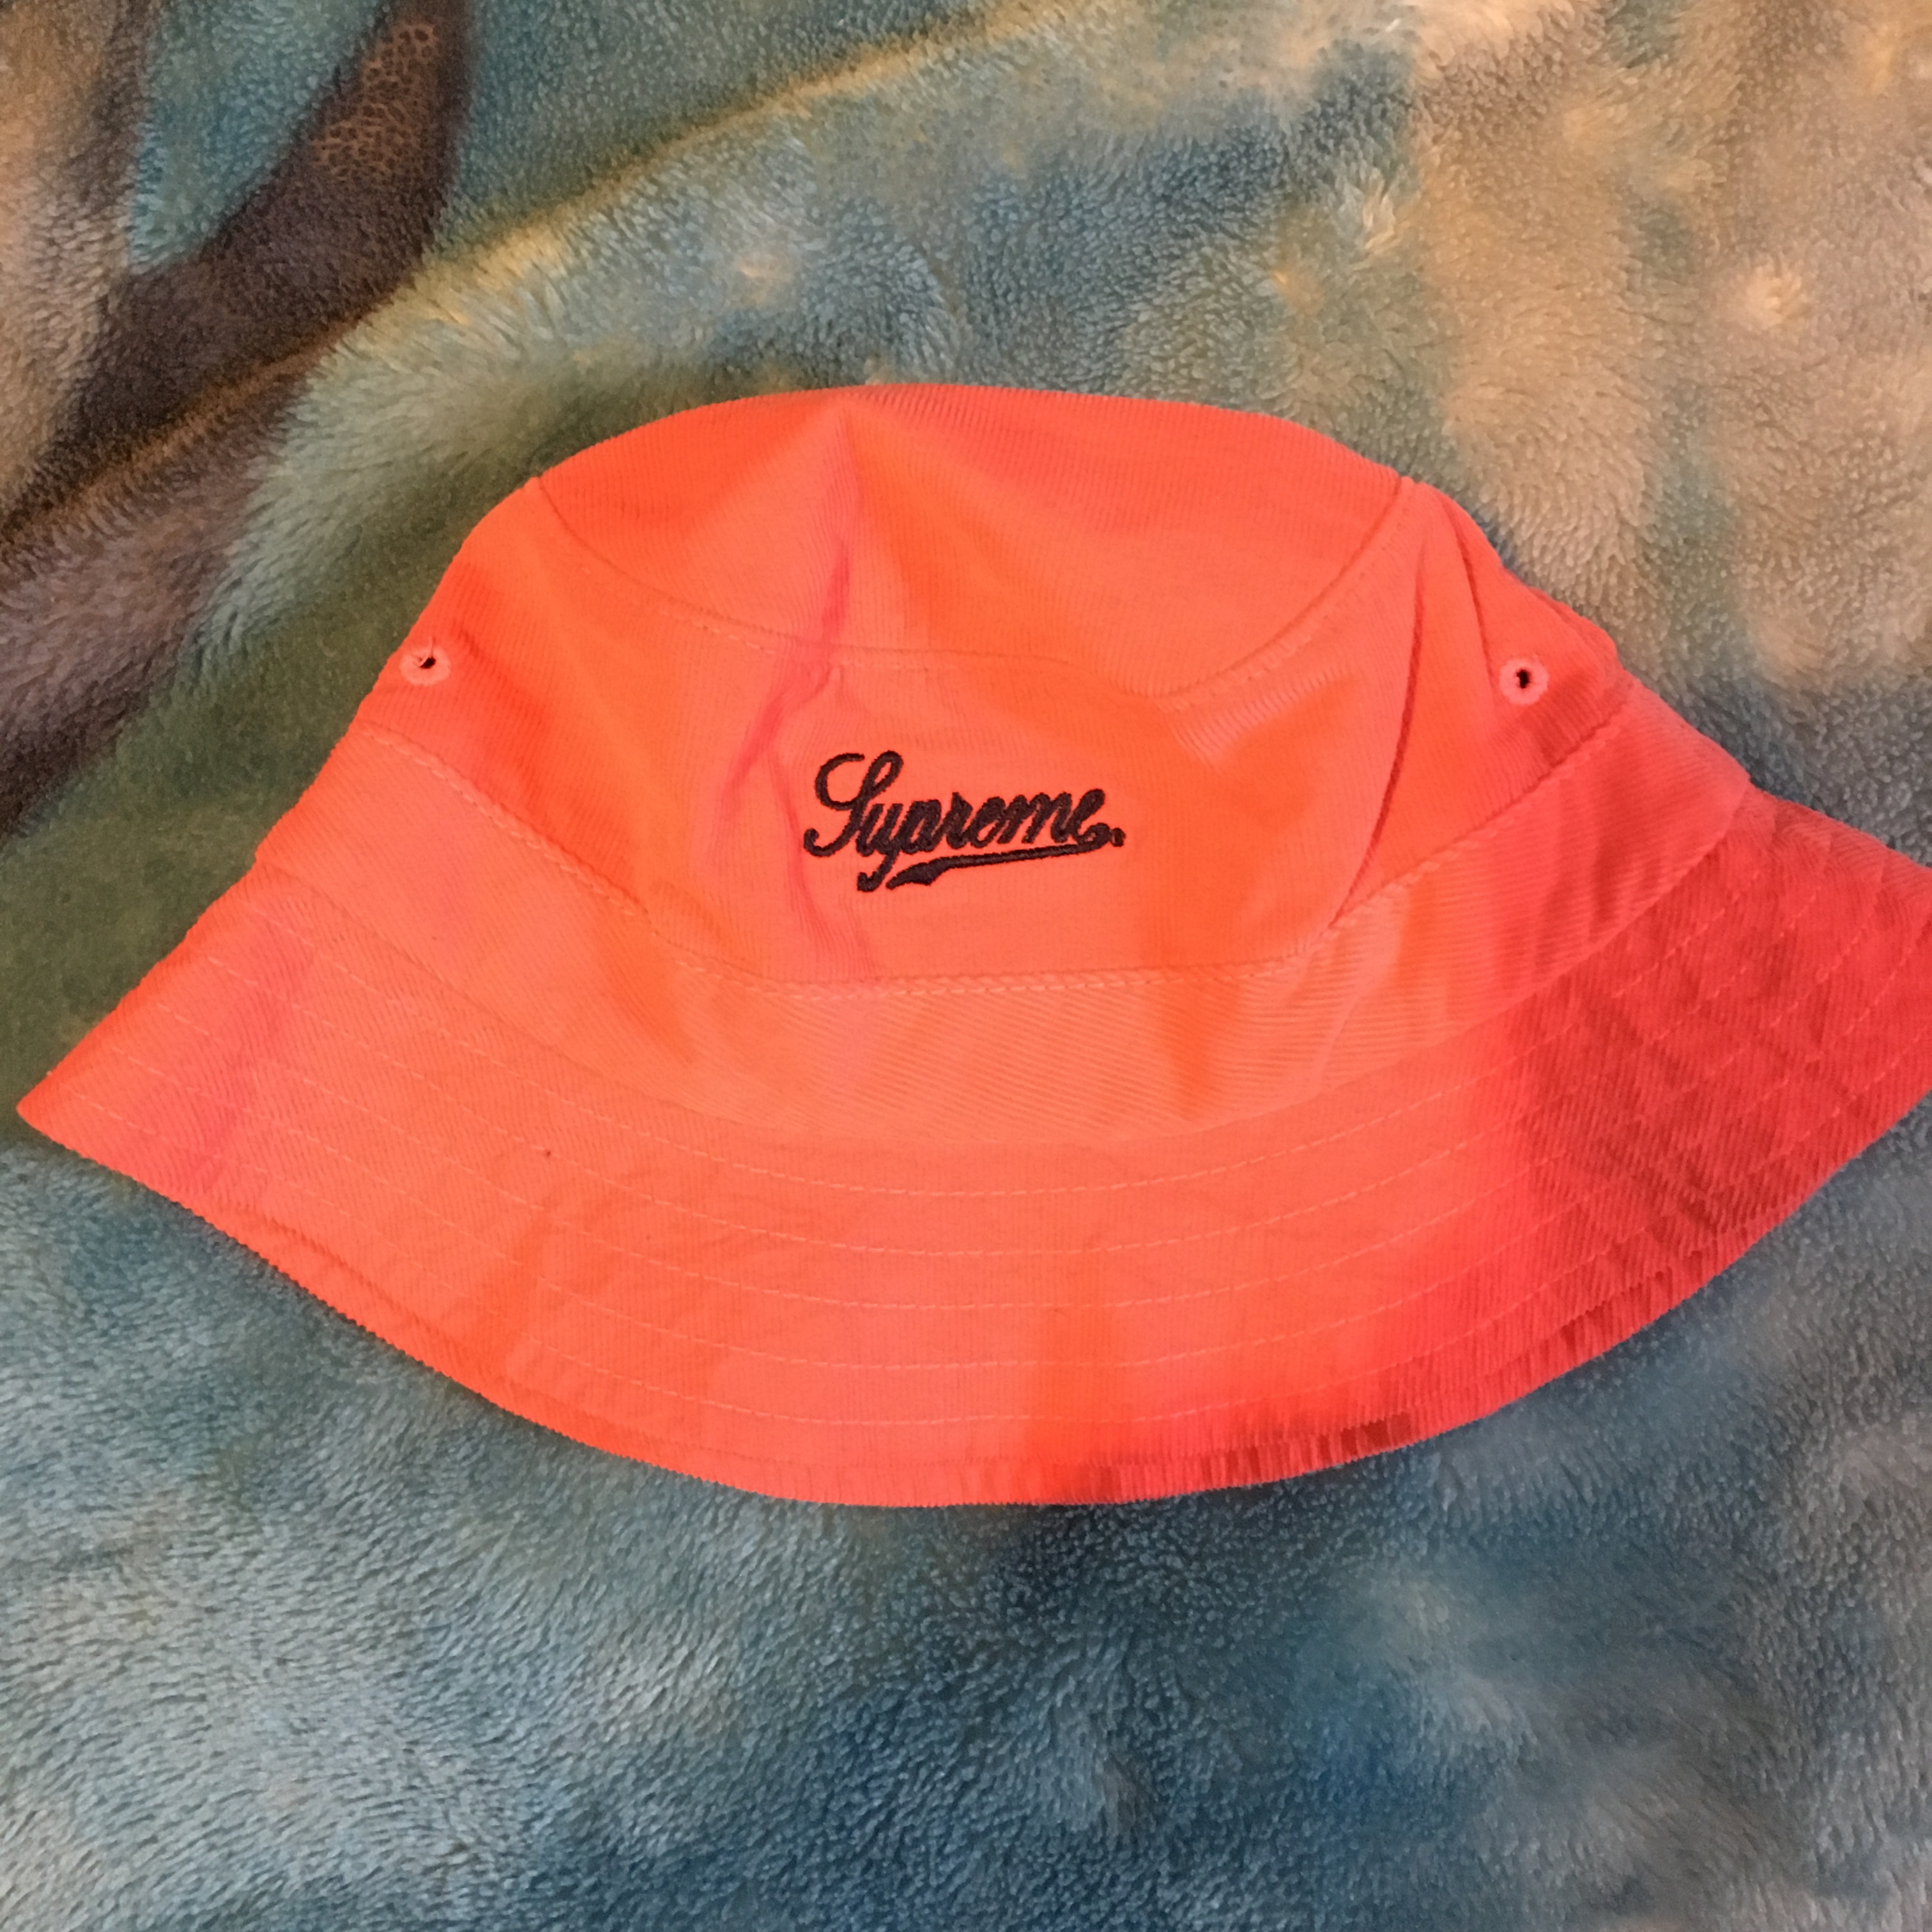 2a26c529a29 Supreme Supreme Bucket hat Size one size - Hats for Sale - Grailed